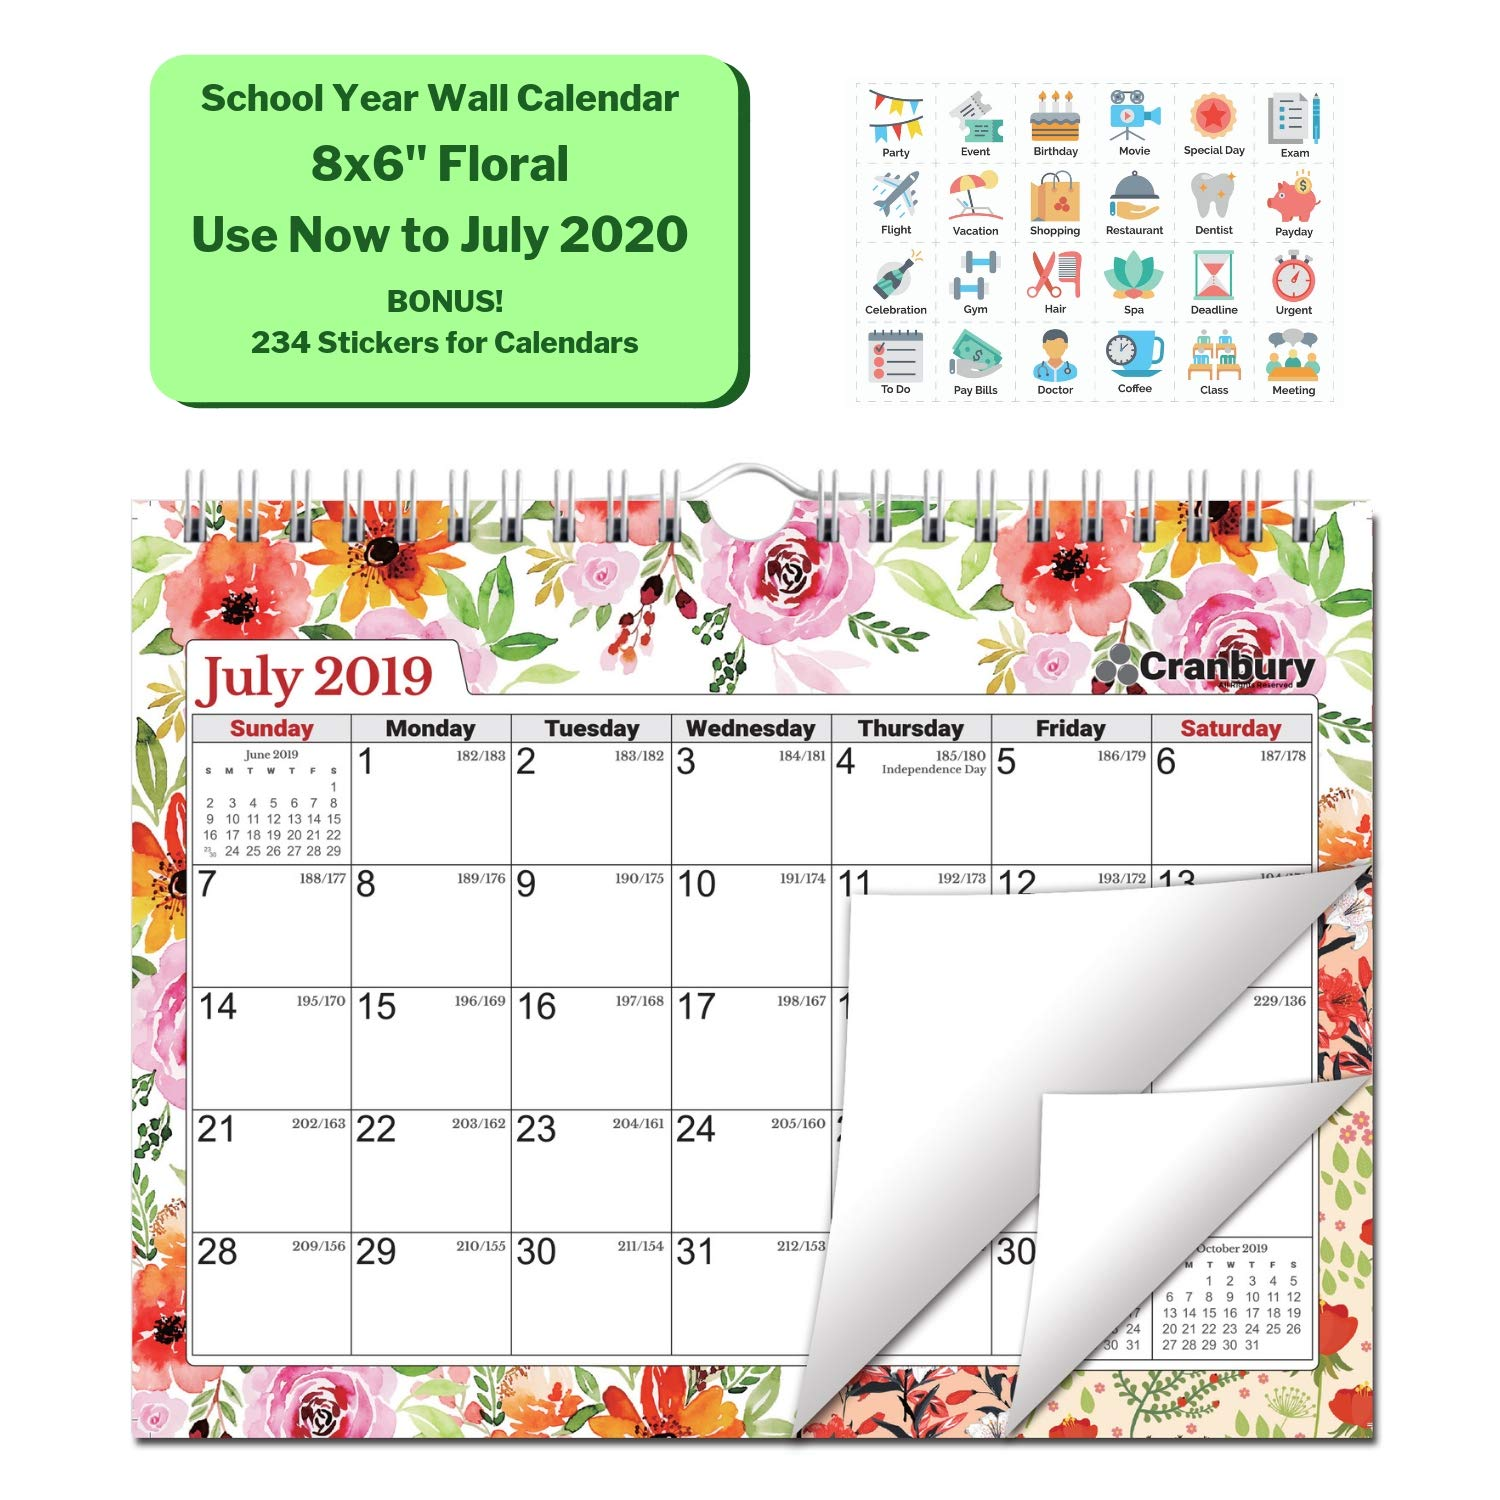 Small School Year Wall Calendar 2019-2020 (Floral) 8x6 Monthly Calendar with Acid-Free Premium Paper, Use to July 2020, Hanging Bulletin Board Academic Calendar with Stickers for 2019-2020 Calendar